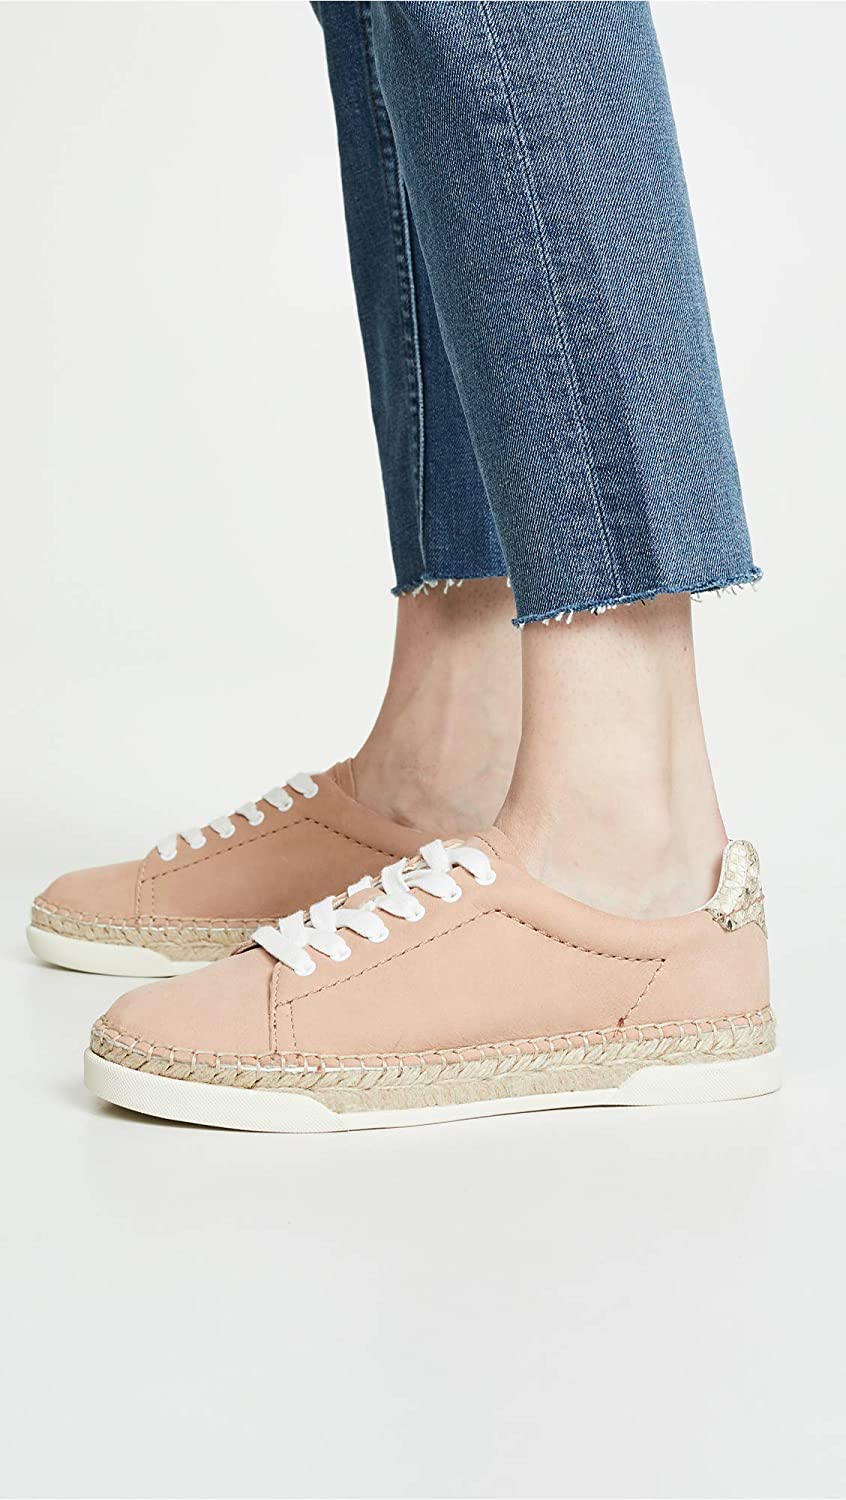 Dolce Vita Womens Madox Lace Up Espadrilles